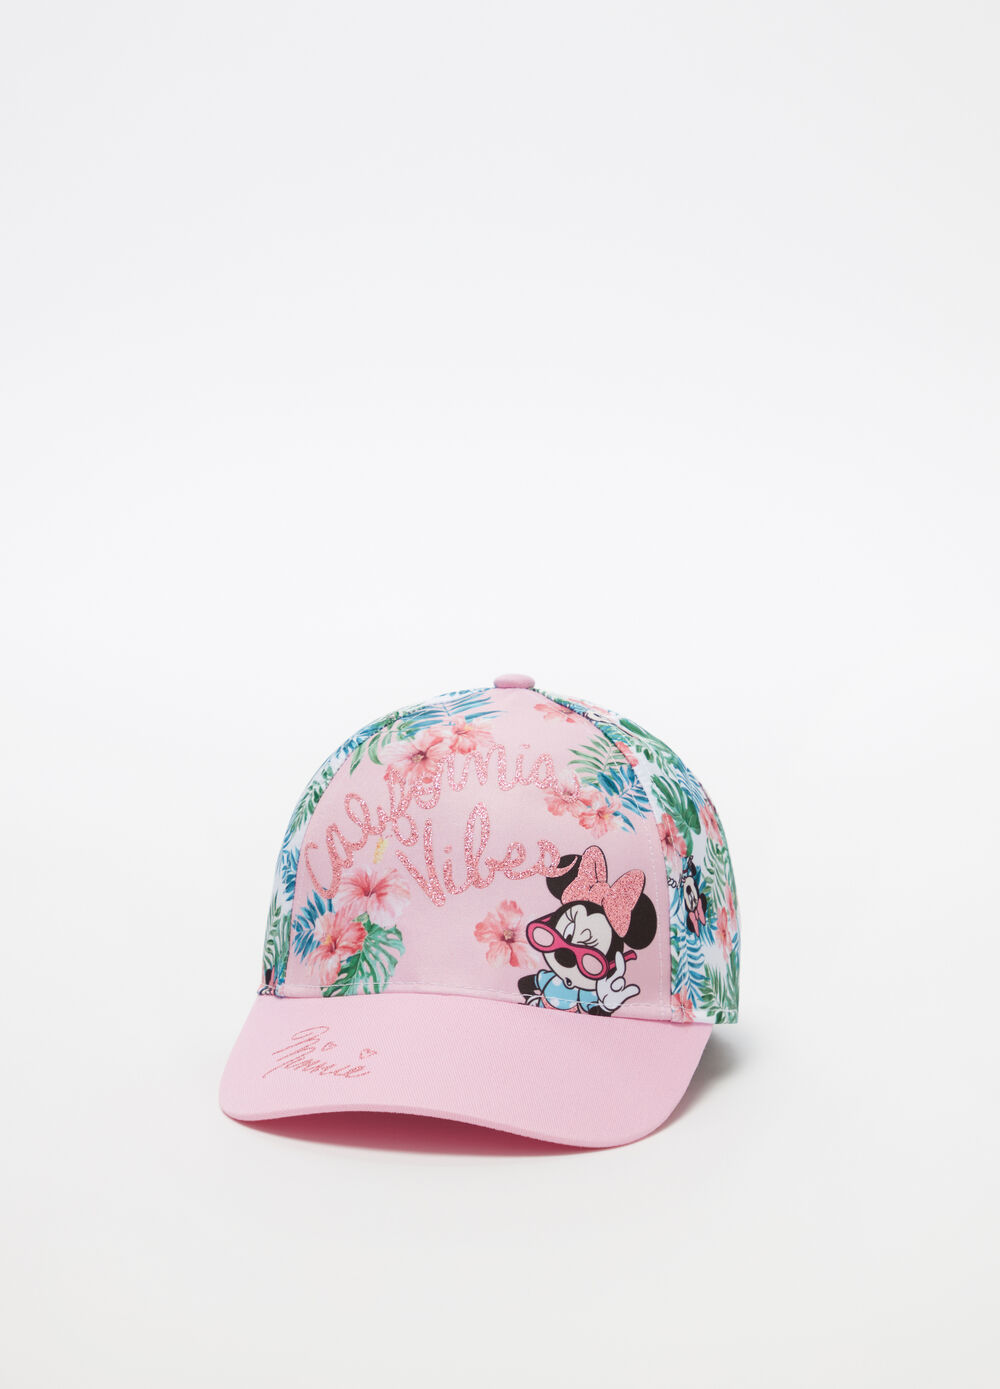 Disney Baby Minnie Mouse baseball cap